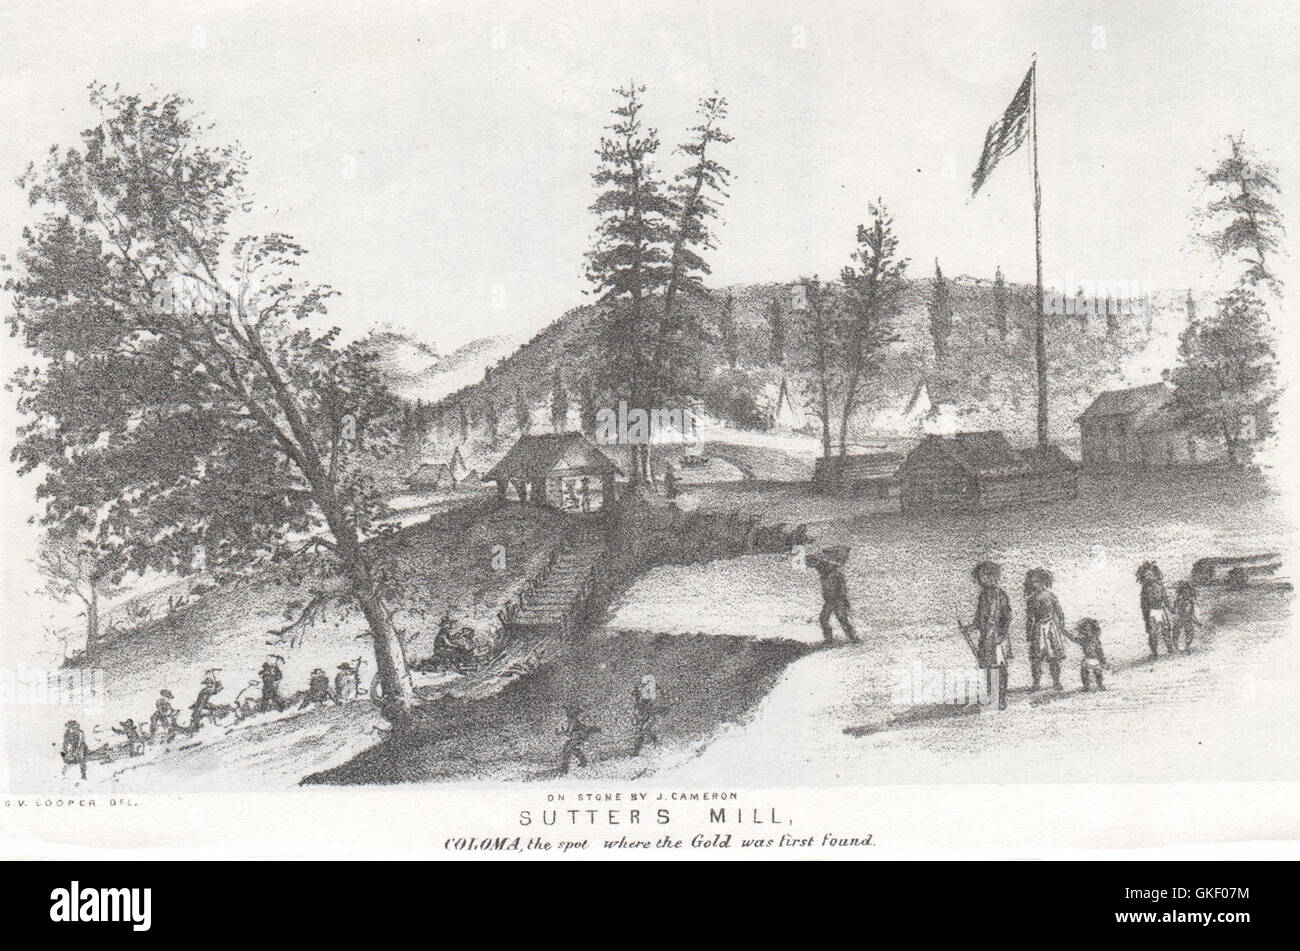 'Sutter's Mill, Coloma…where gold was first found', California. G. Cooper, 1853 - Stock Image